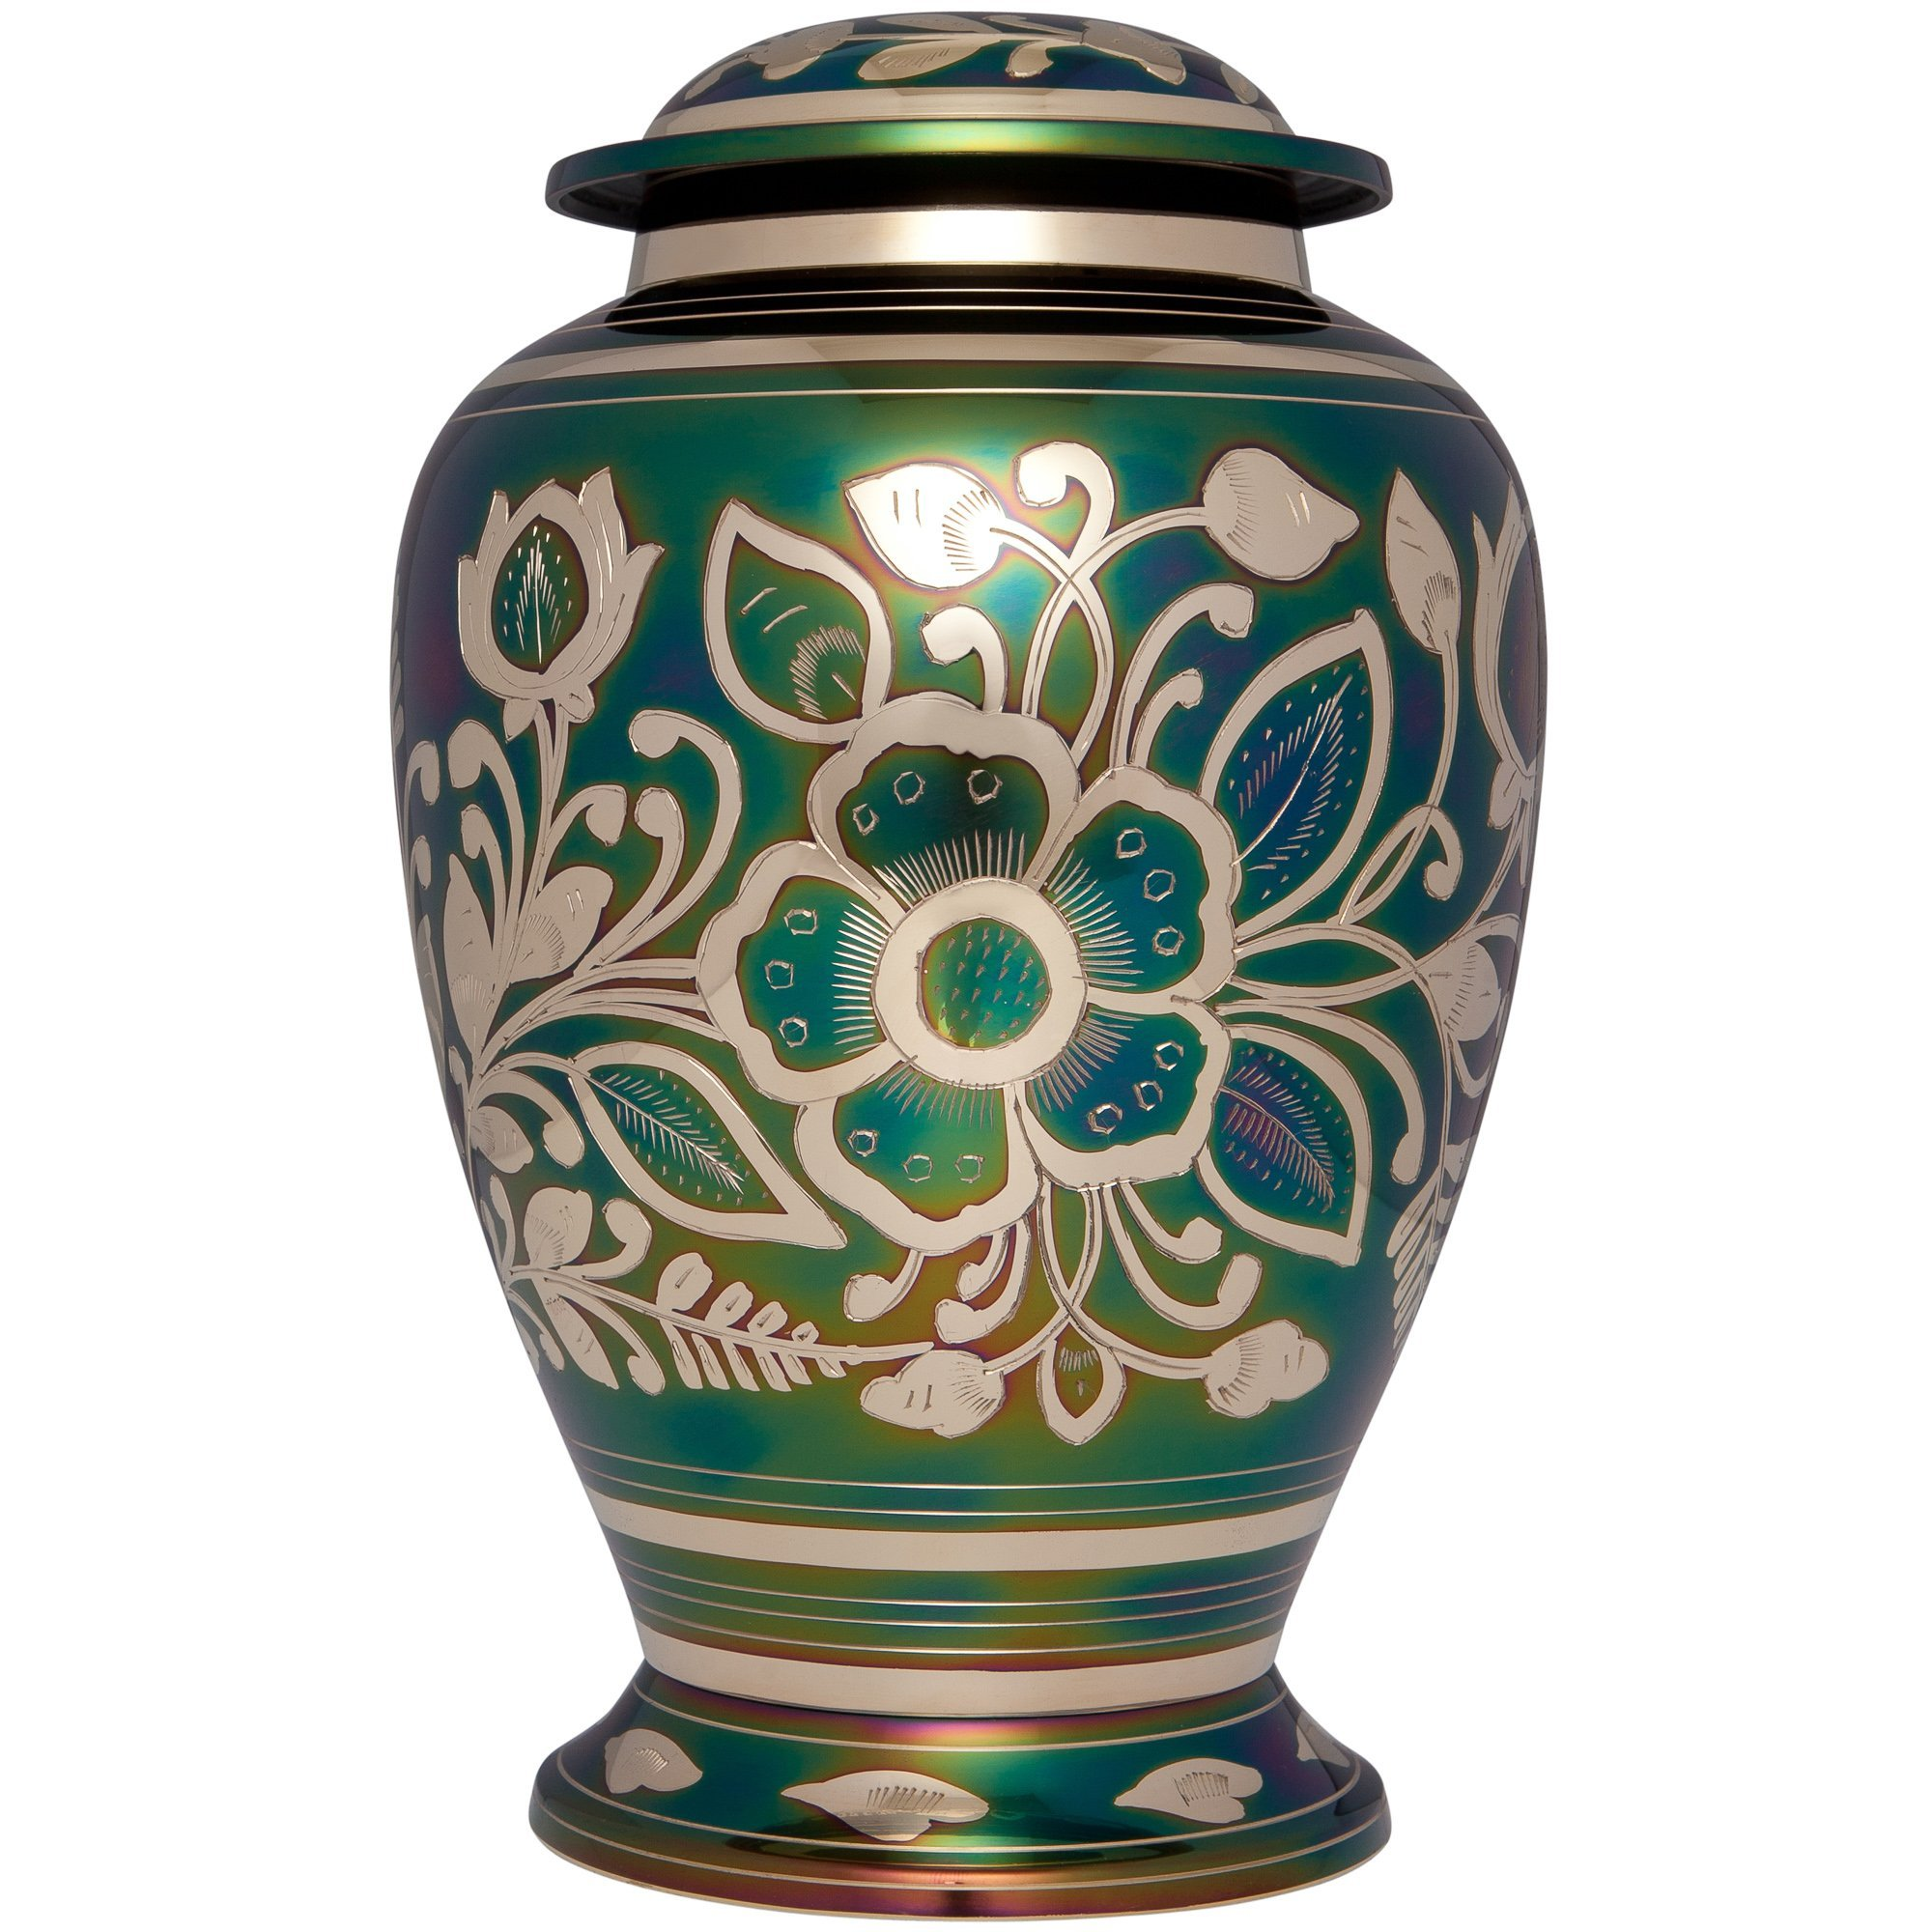 Green Funeral Urn by Liliane Memorials - Cremation Urn for Human Ashes - Hand Made in Brass - Suitable for Cemetery Burial or Niche - Large Size fits remains of Adults up to 200 lbs - Ayelet Model